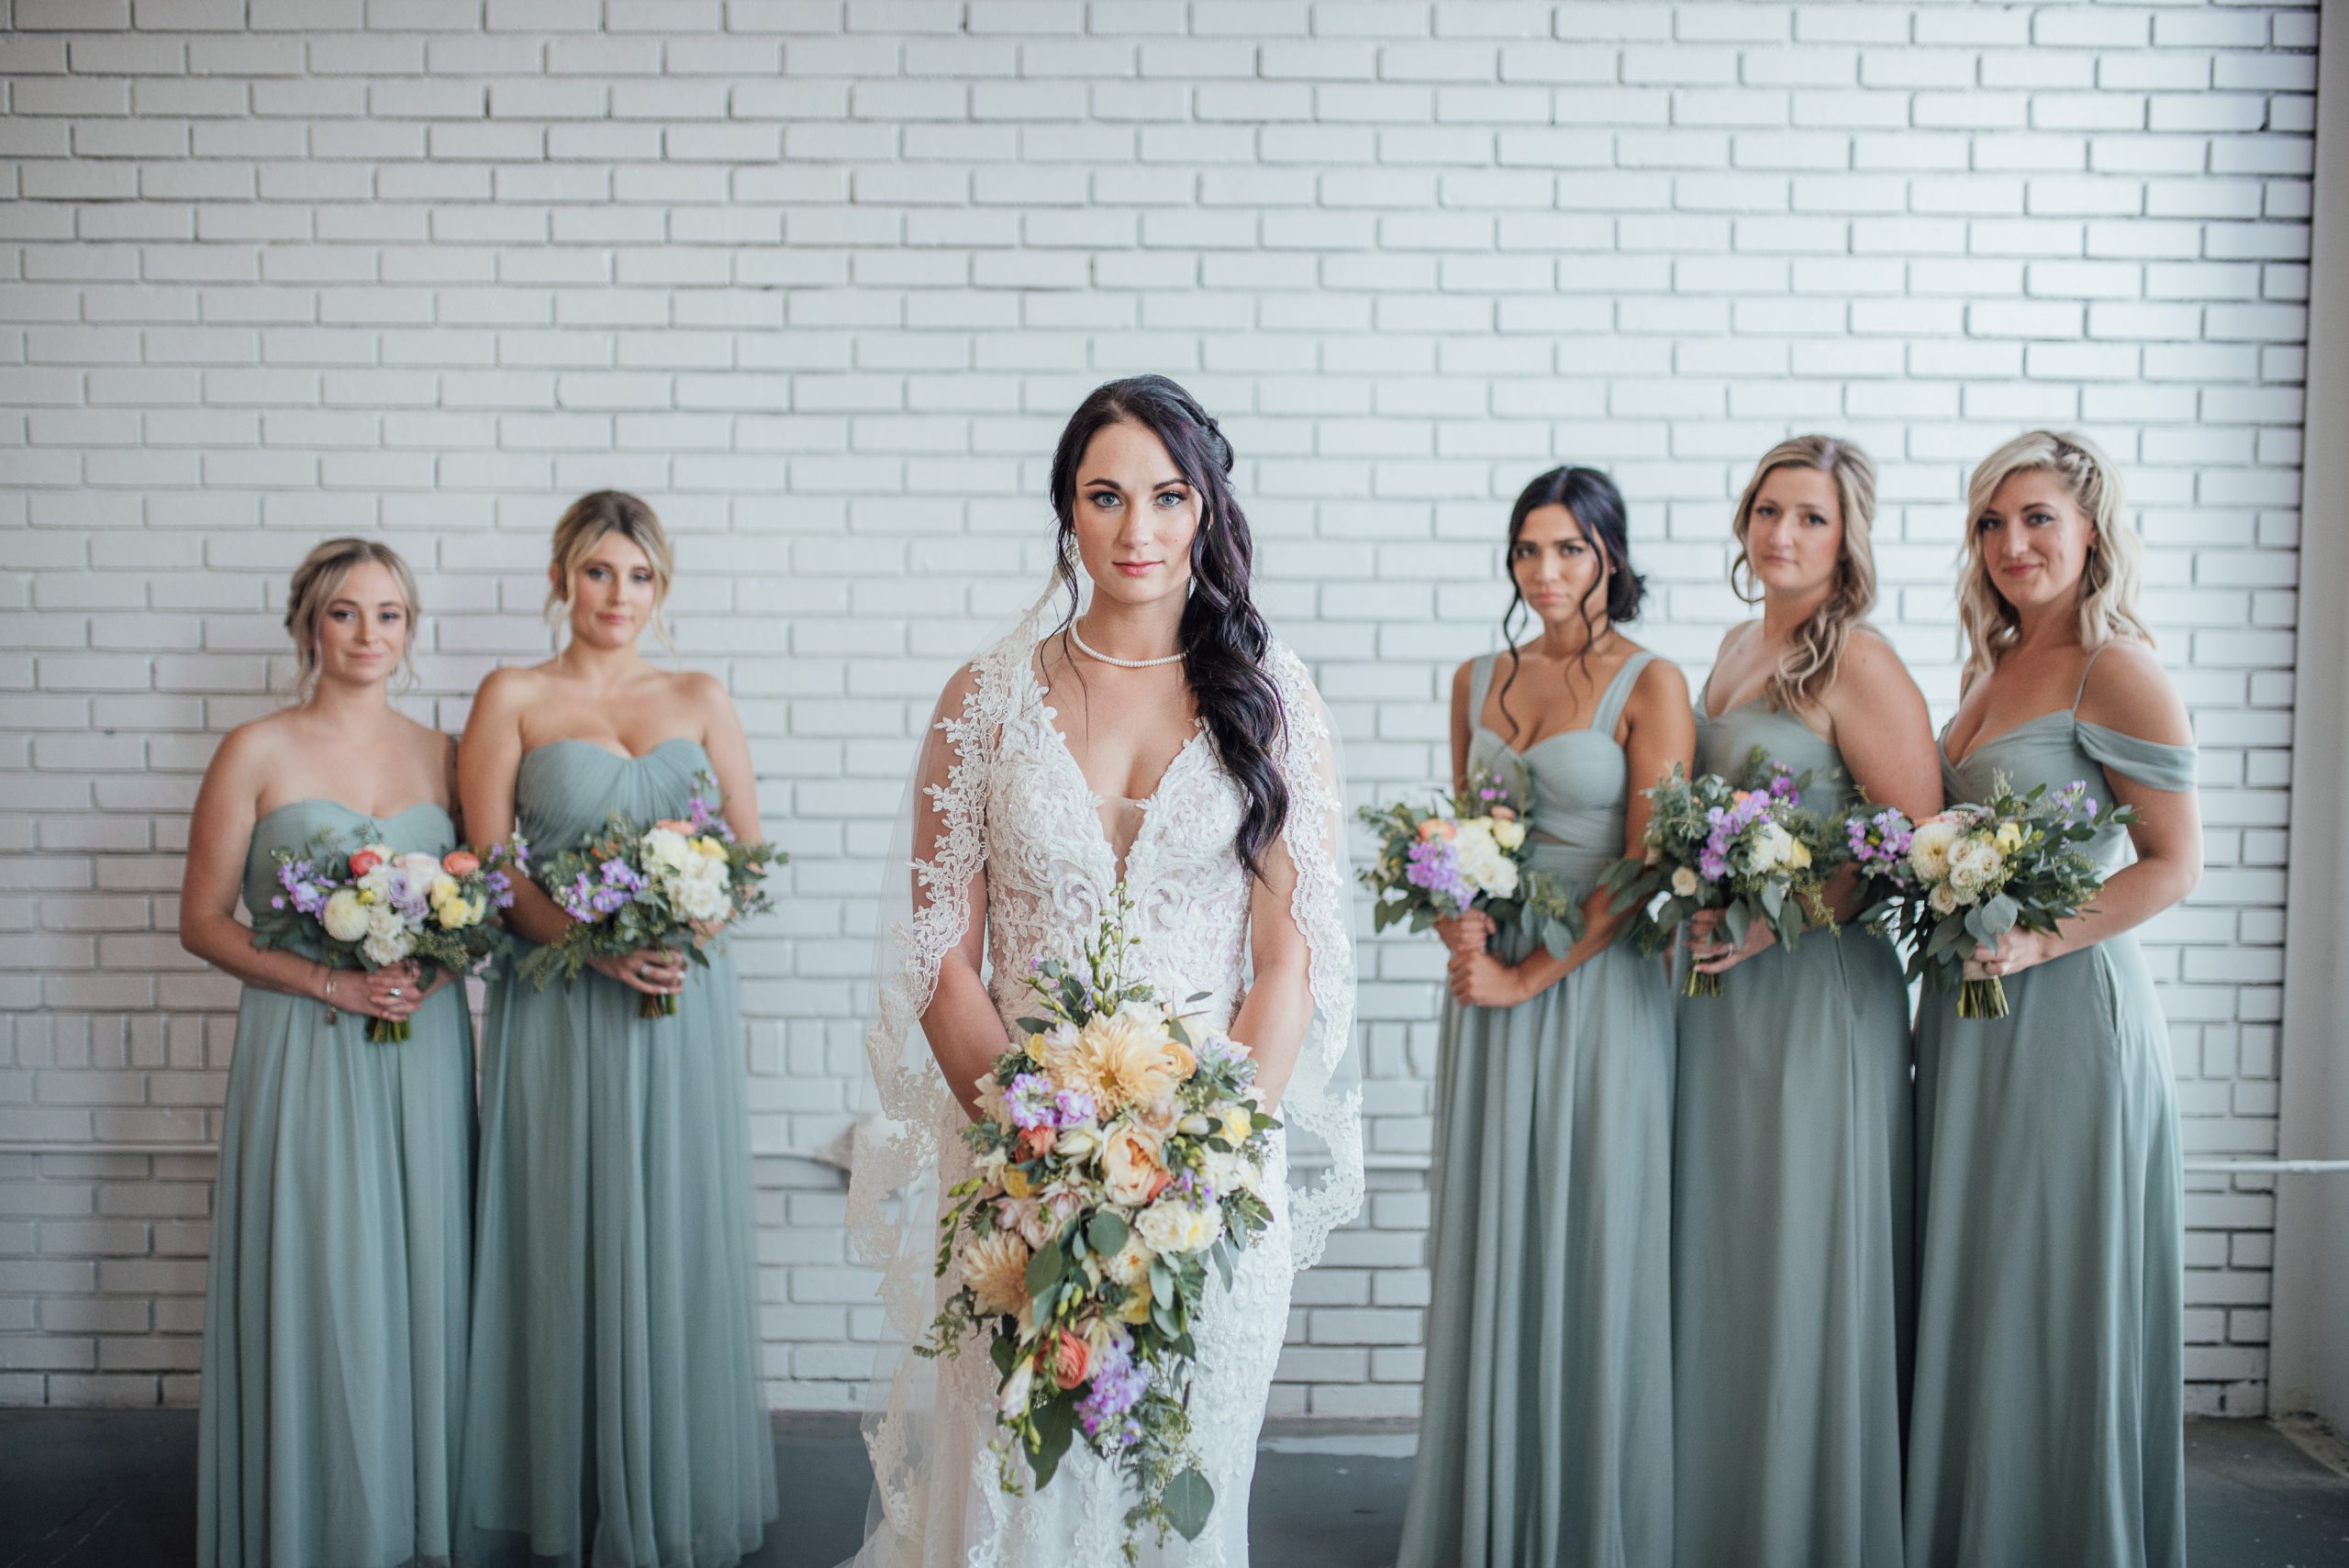 Danielle and her bridesmaids in front of the brick wall at The Venues Toledo.